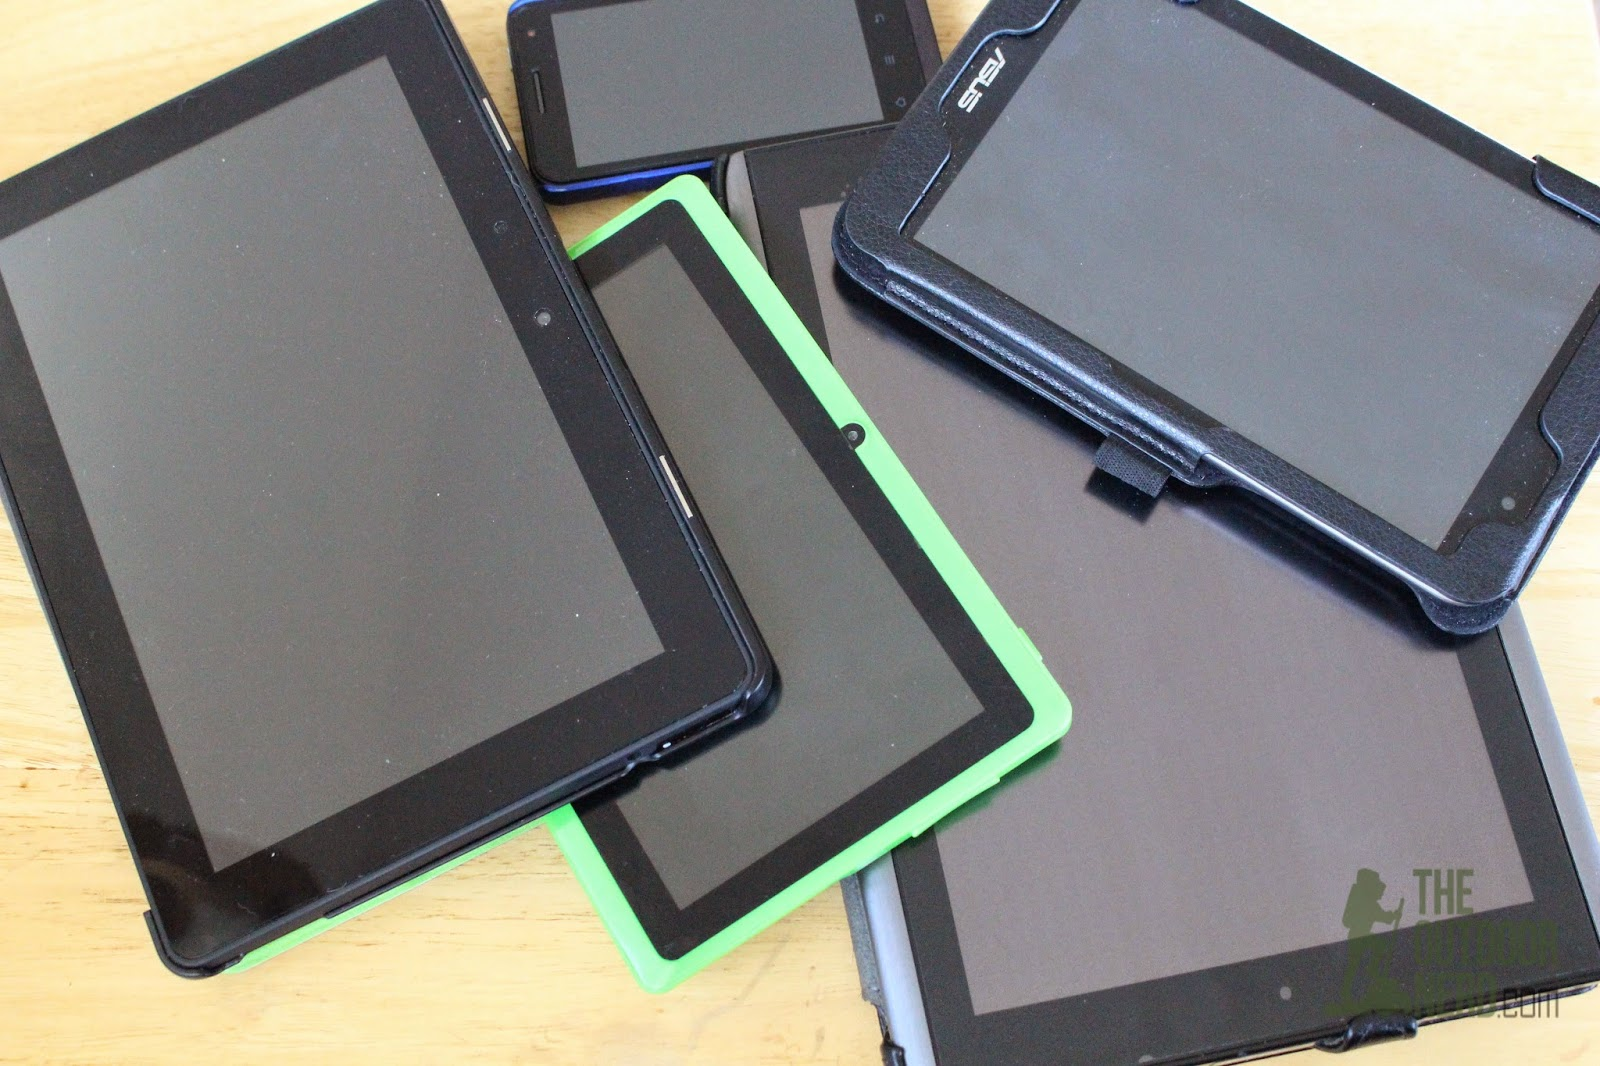 Tablets for Survival: A random assortment of our family's tablets